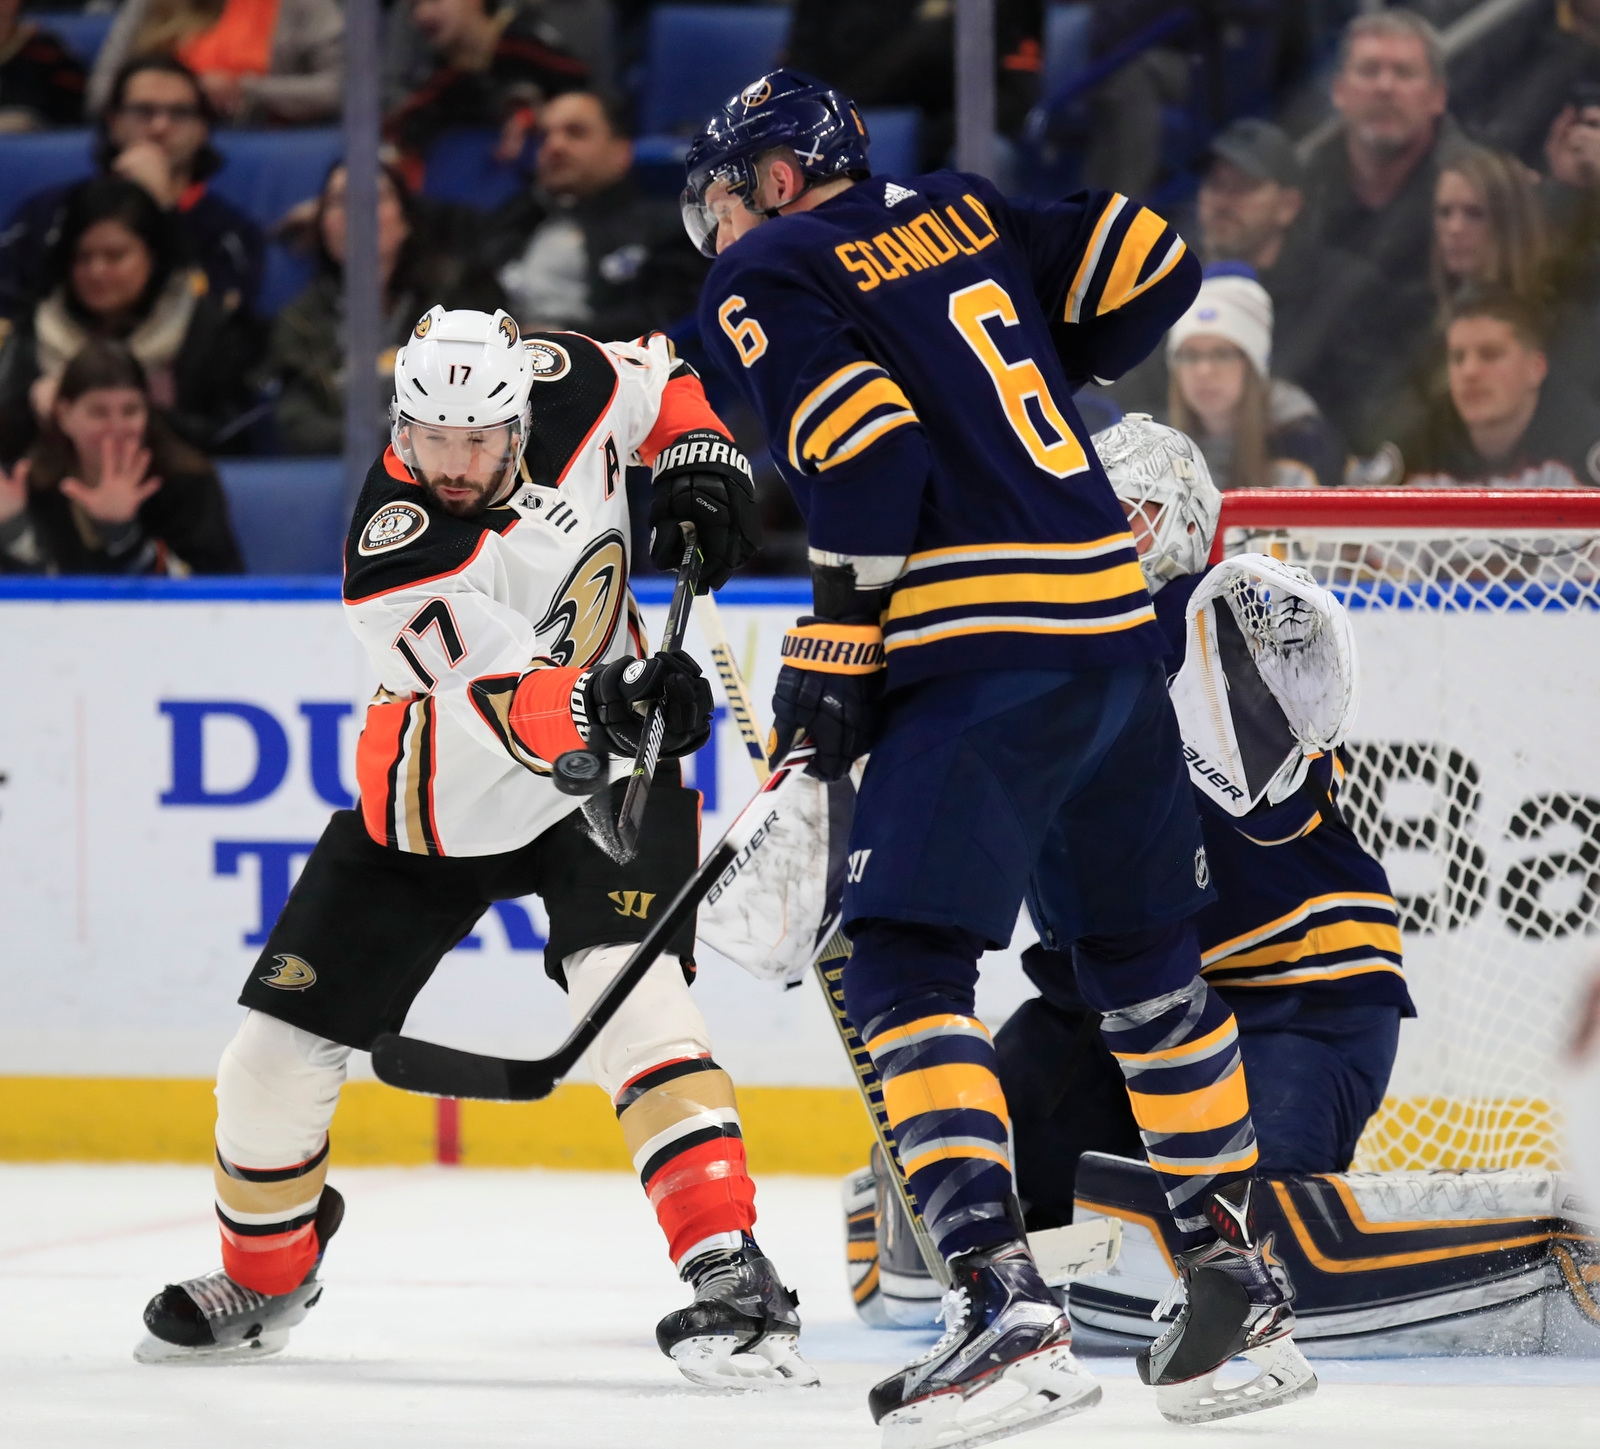 Anaheim Ducks Ryan Kesler tries to tip a puck against the Buffalo Sabres during first period action at the KeyBank Center on Tuesday, Feb. 6, 2018.